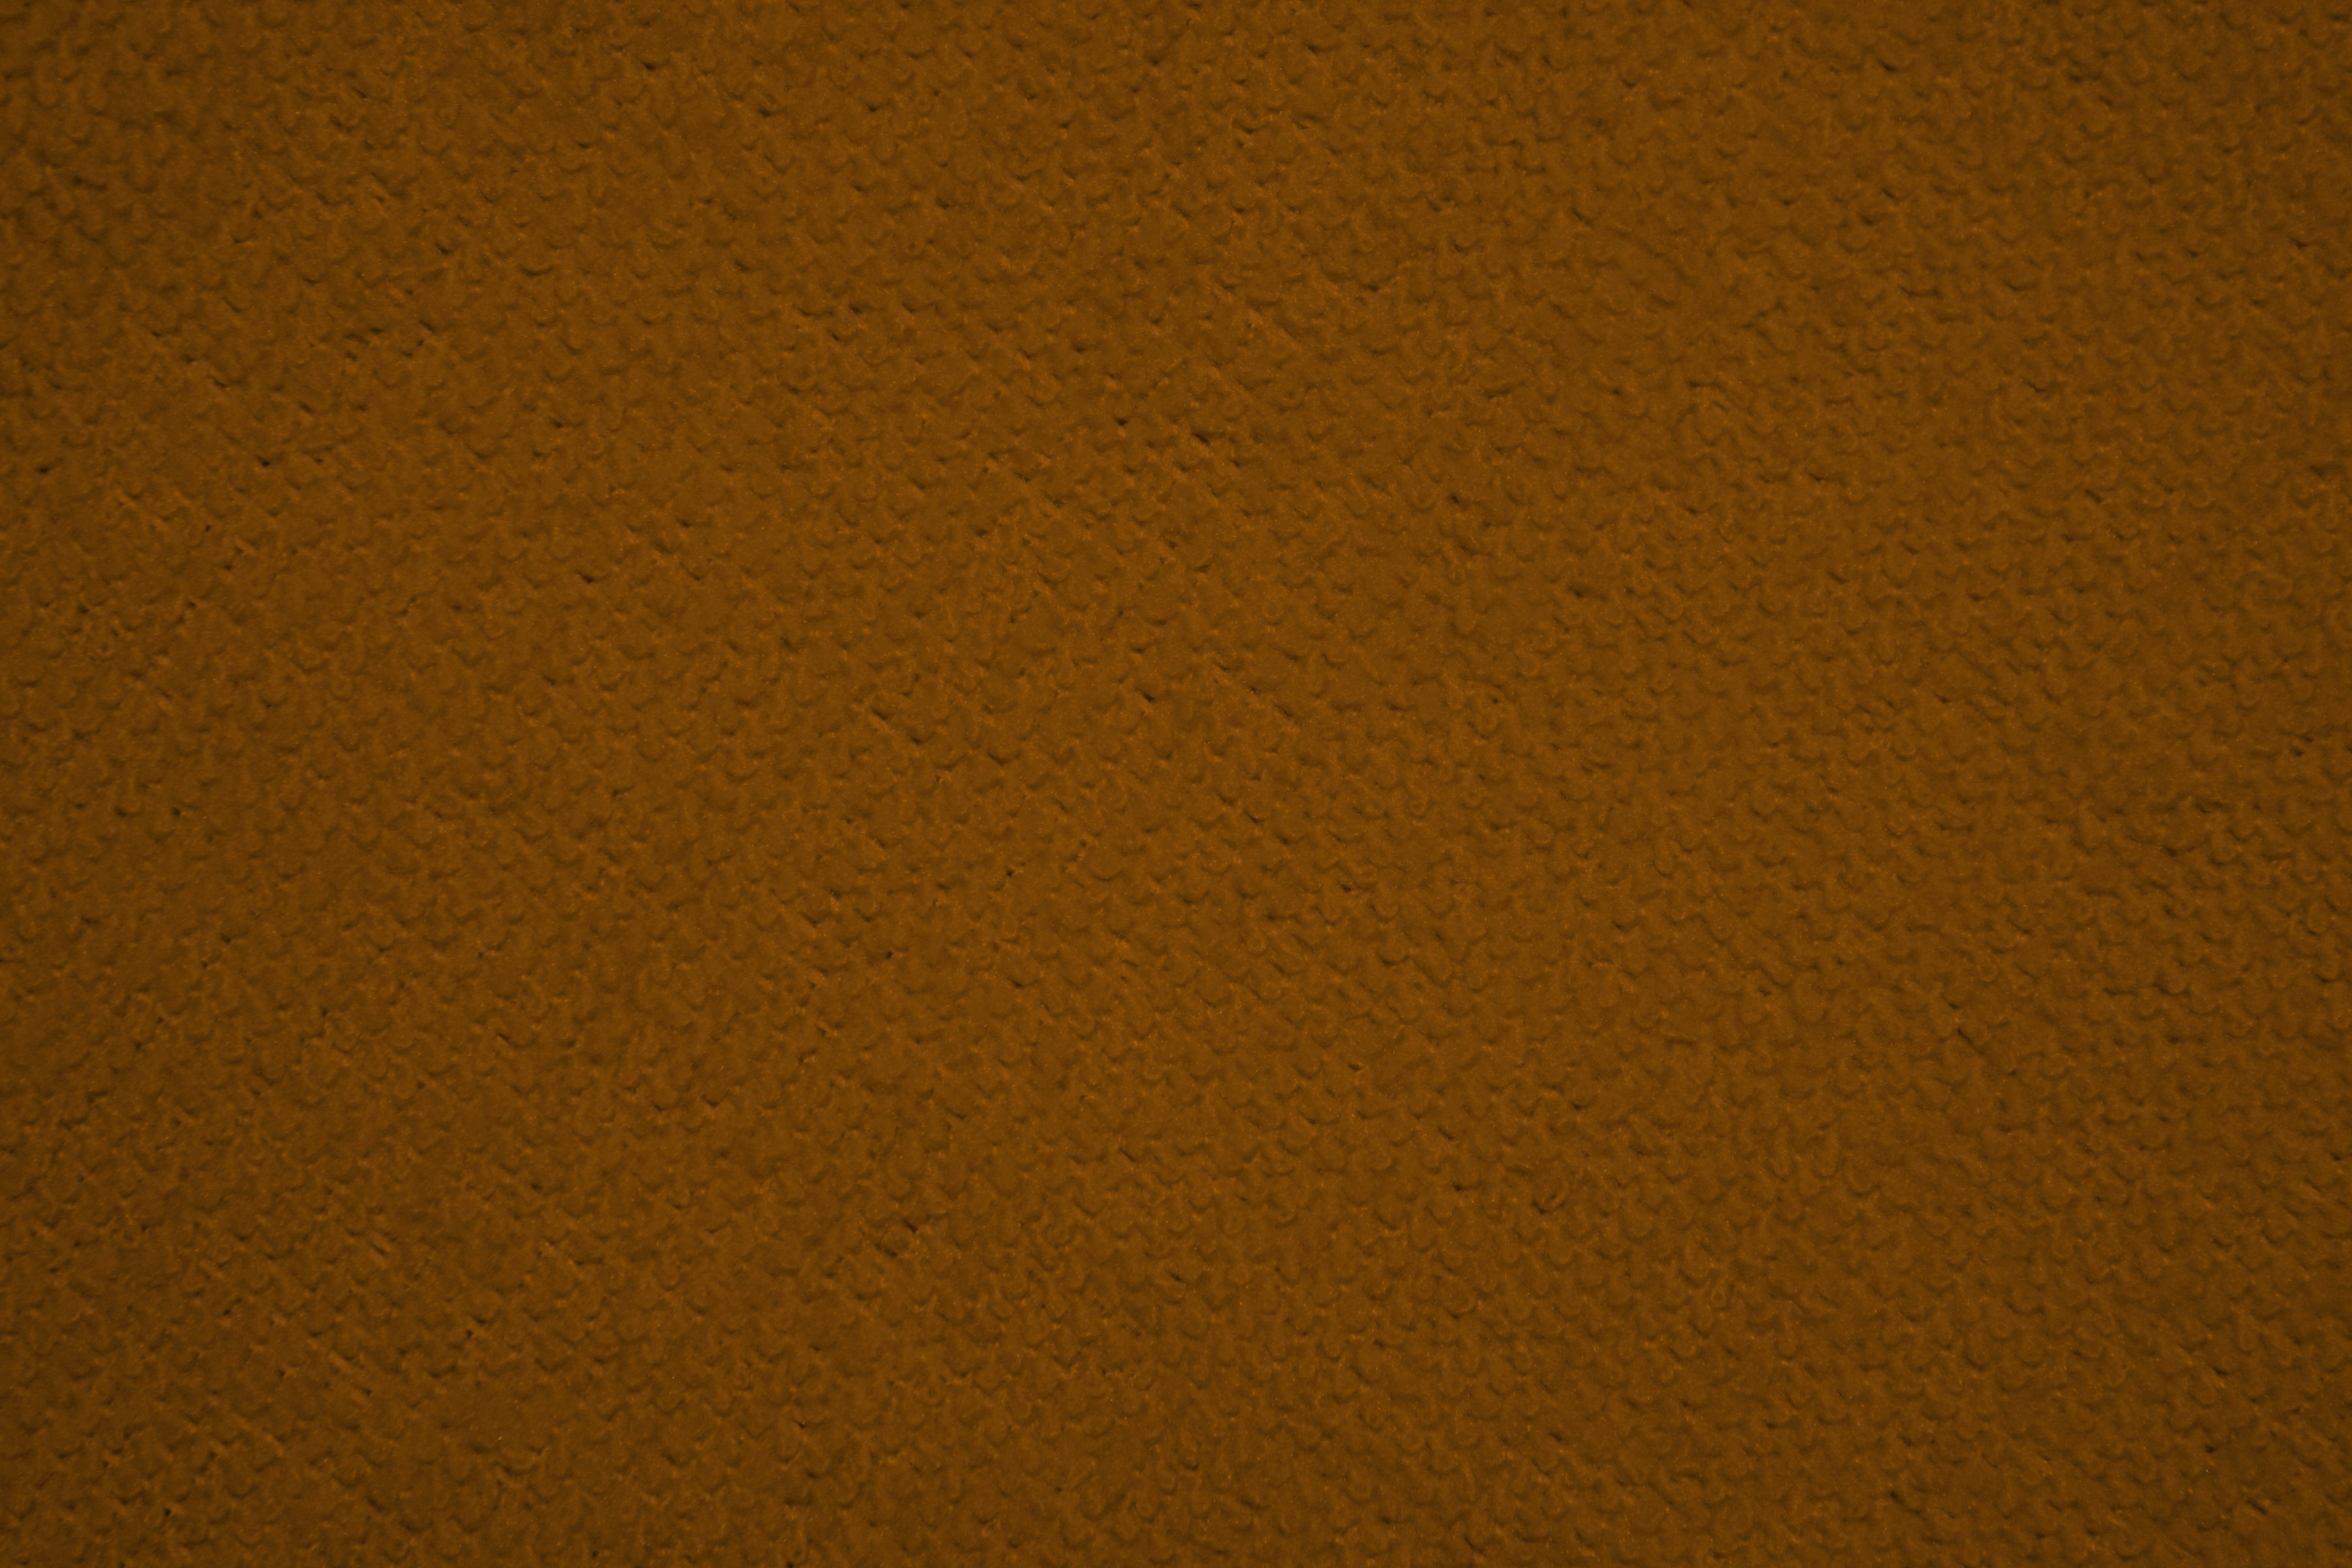 Rust Brown Microfiber Cloth Fabric Texture Picture Free